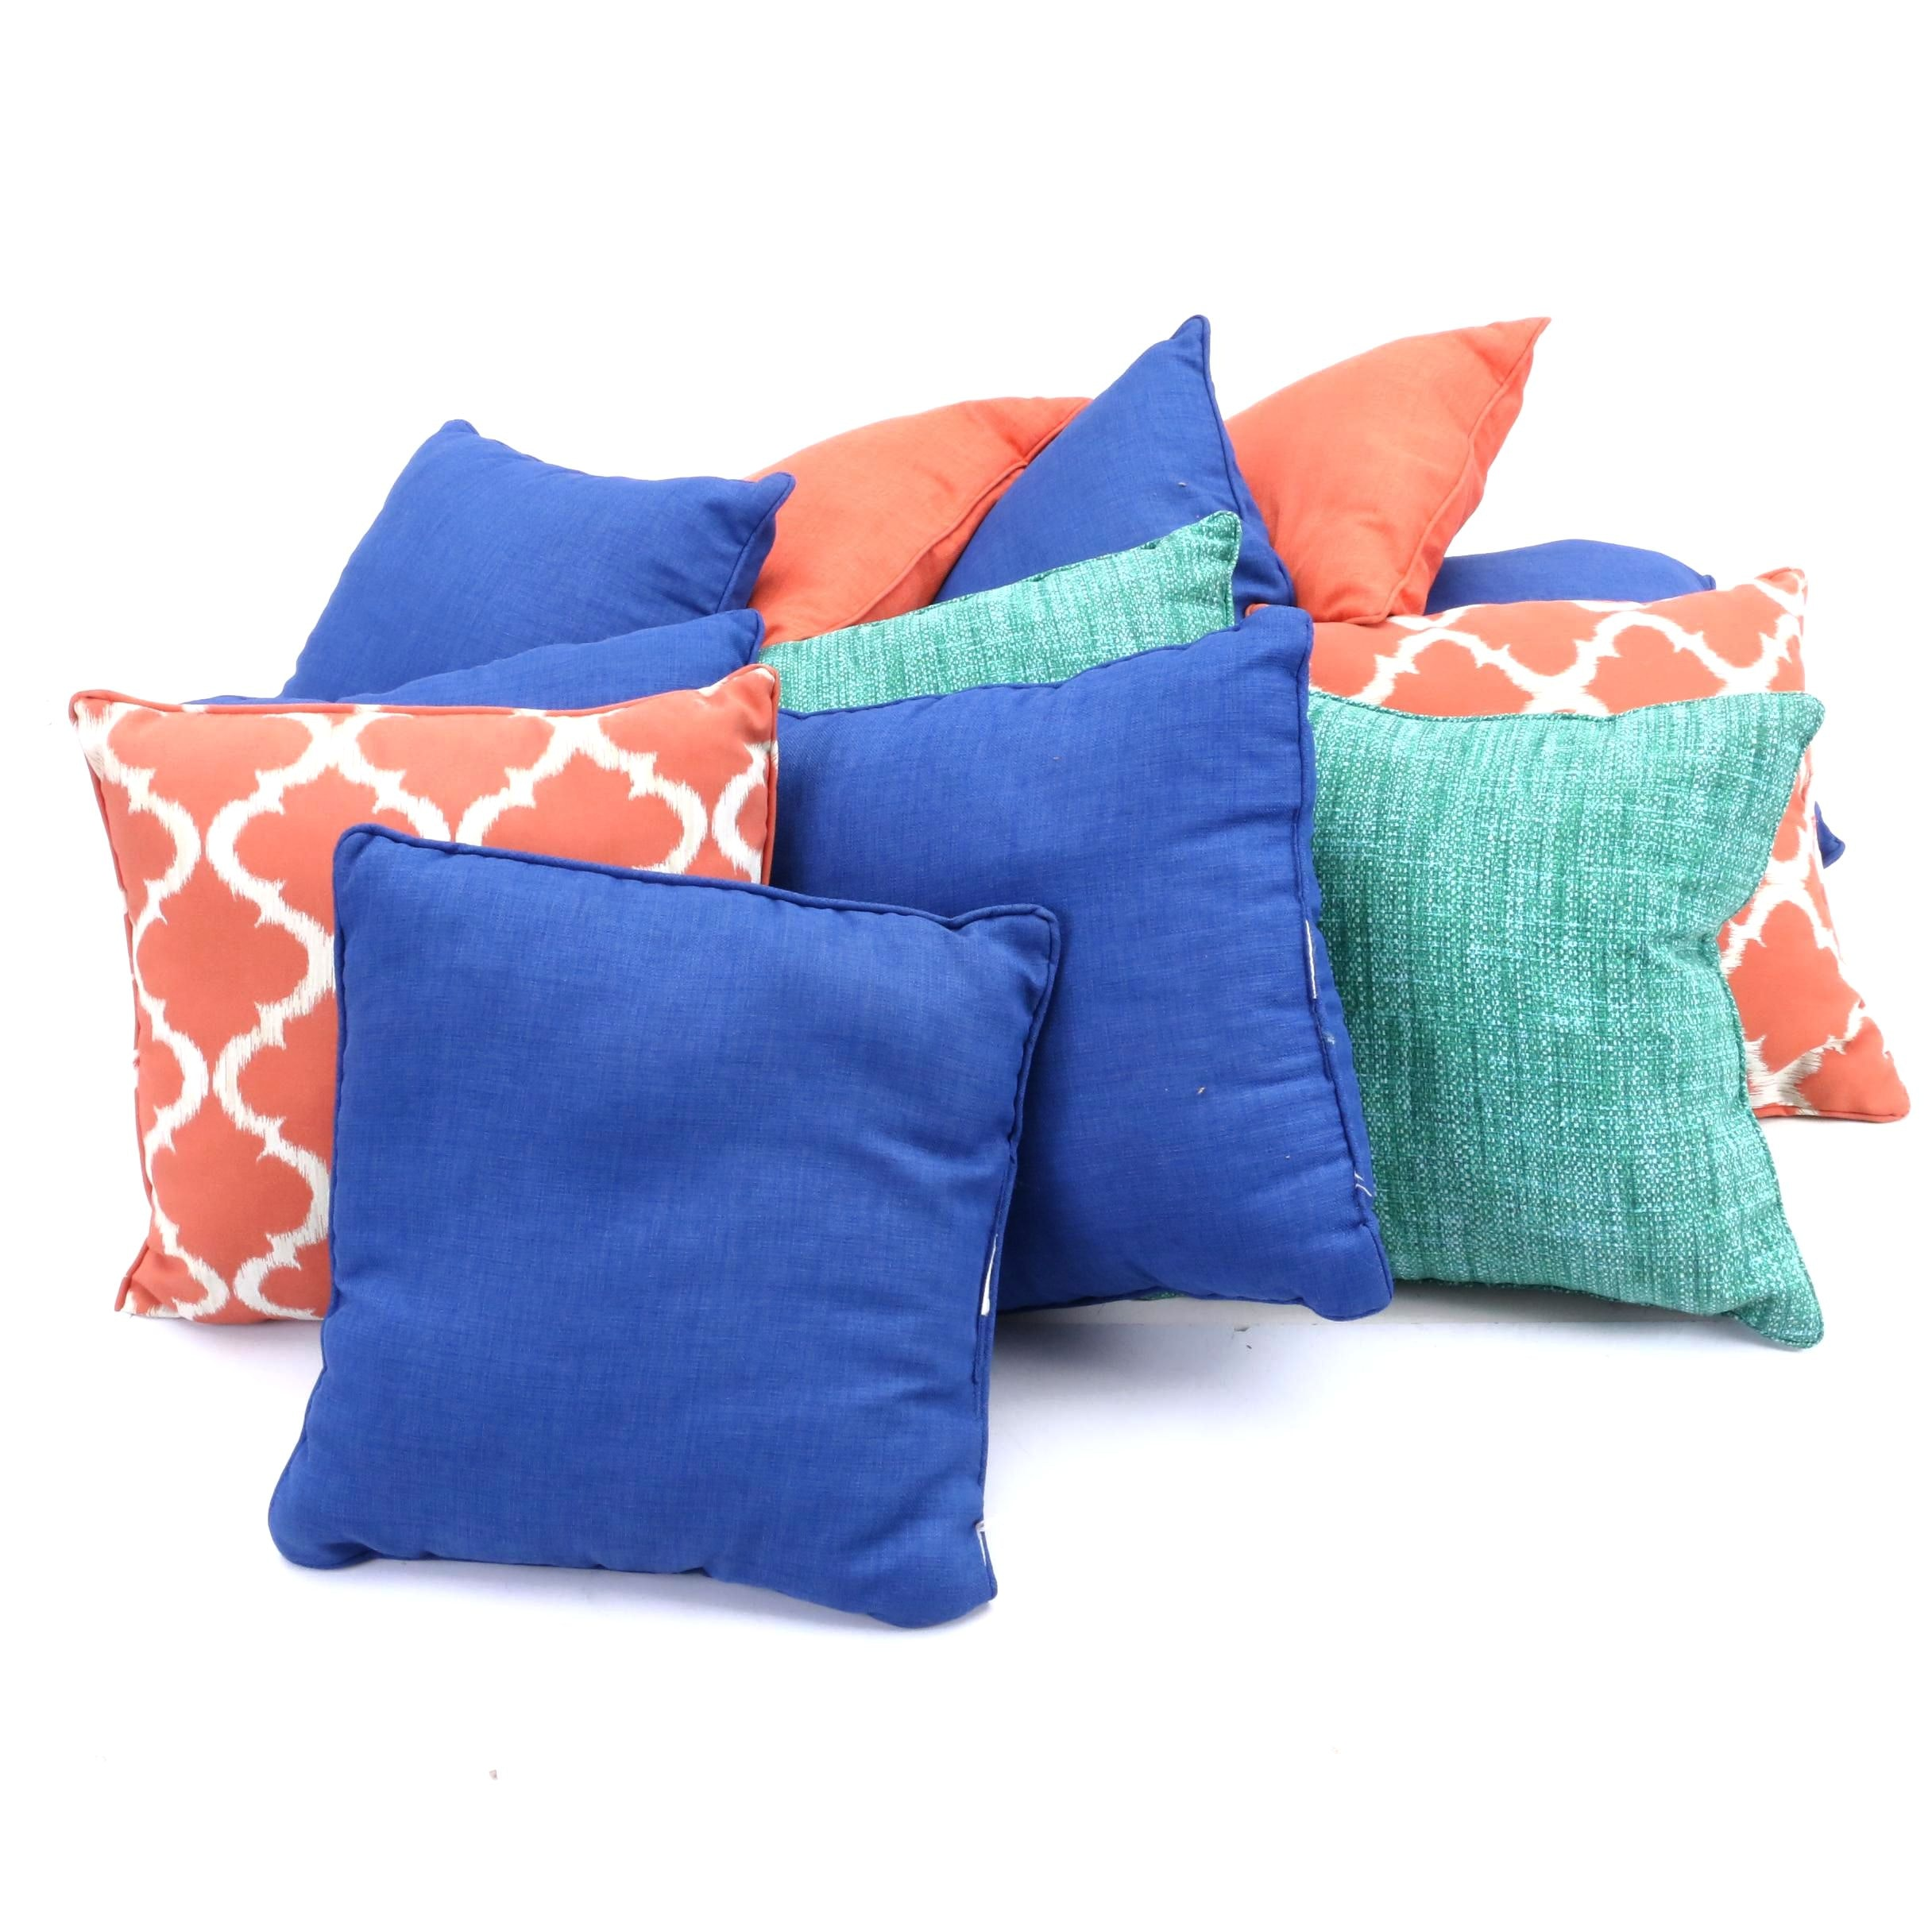 Decorative Accent Pillows Including Solarium